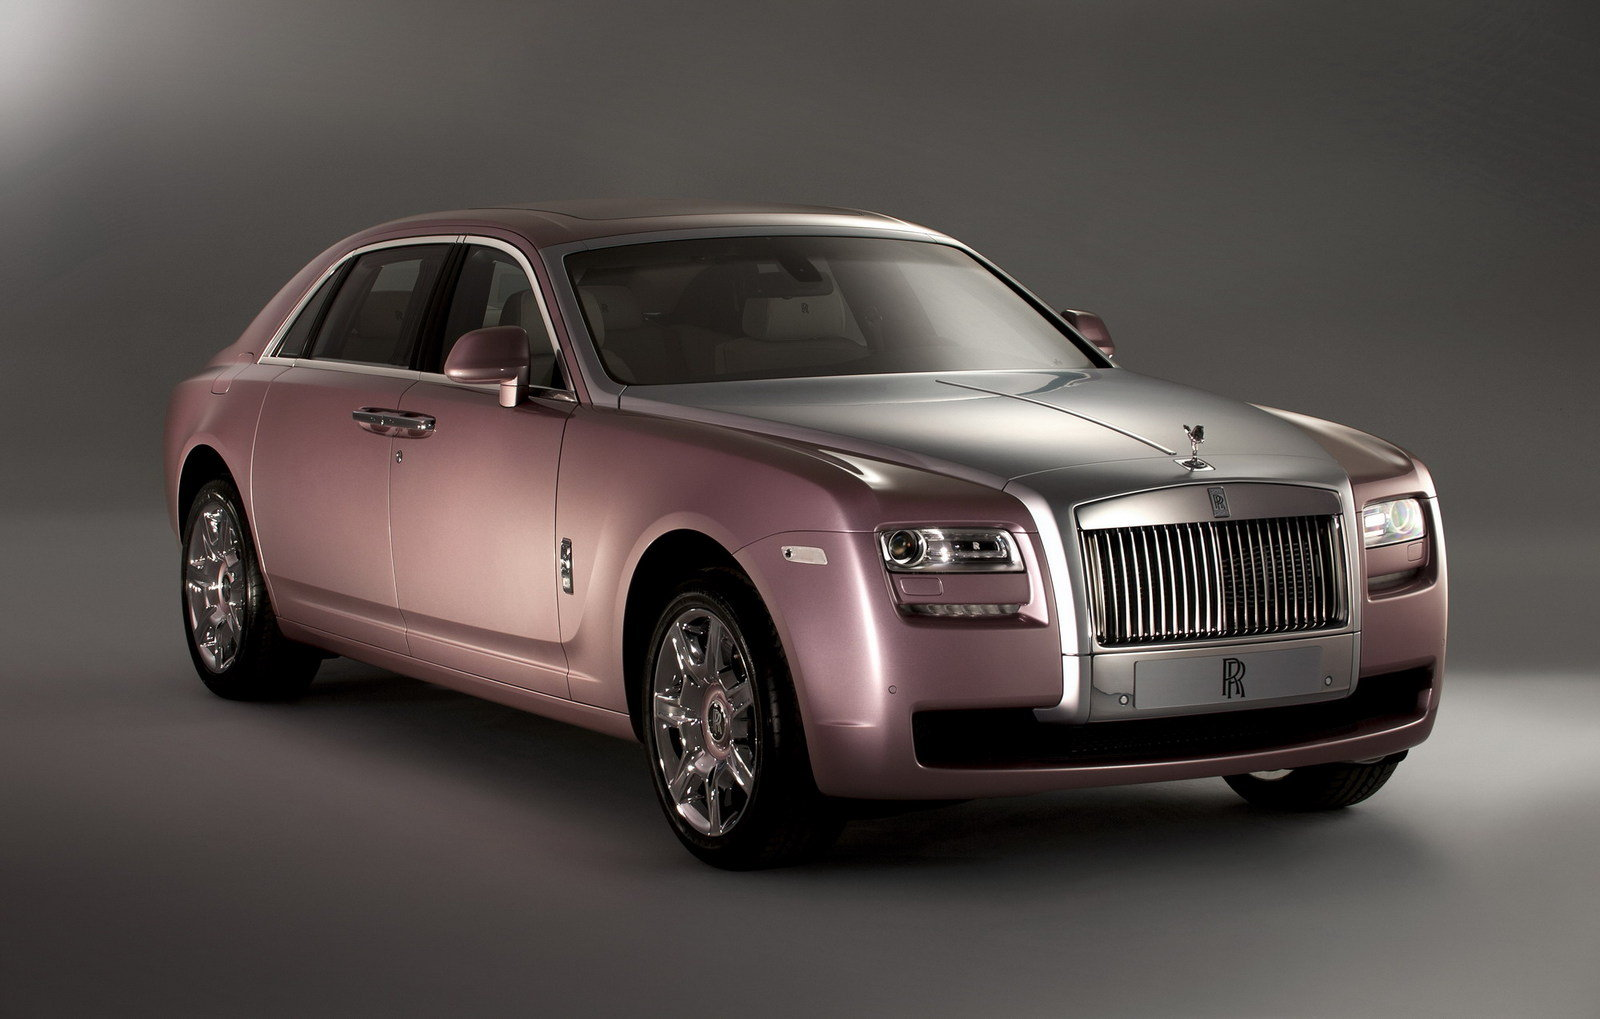 2012 Rolls Royce Ghost Matte Black And Rose Quartz